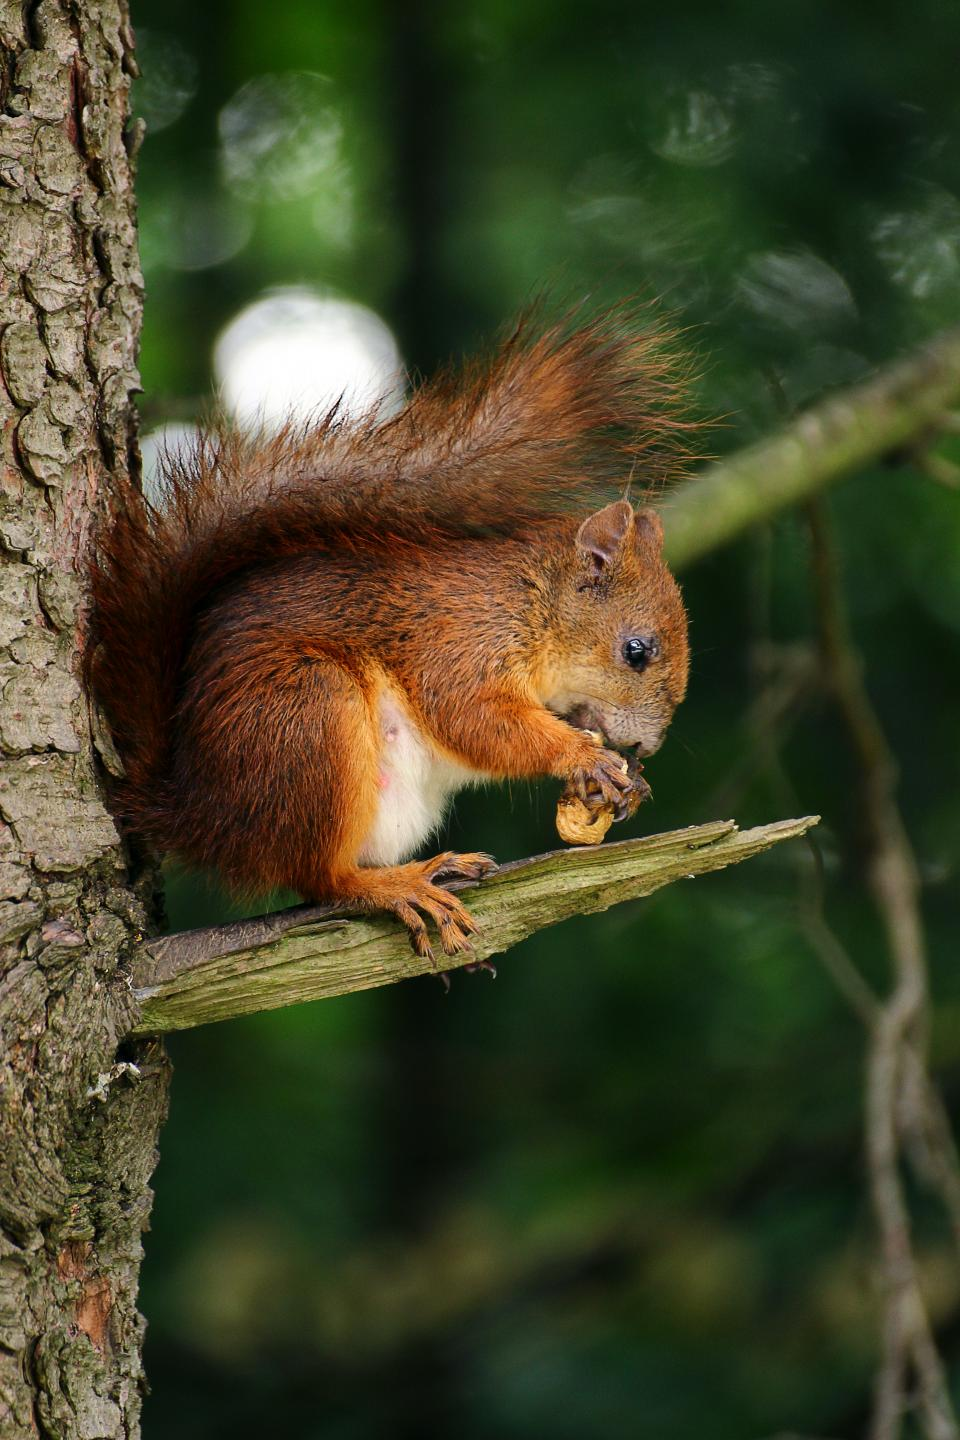 squirrel animal eating tree branch wood plant nature blur